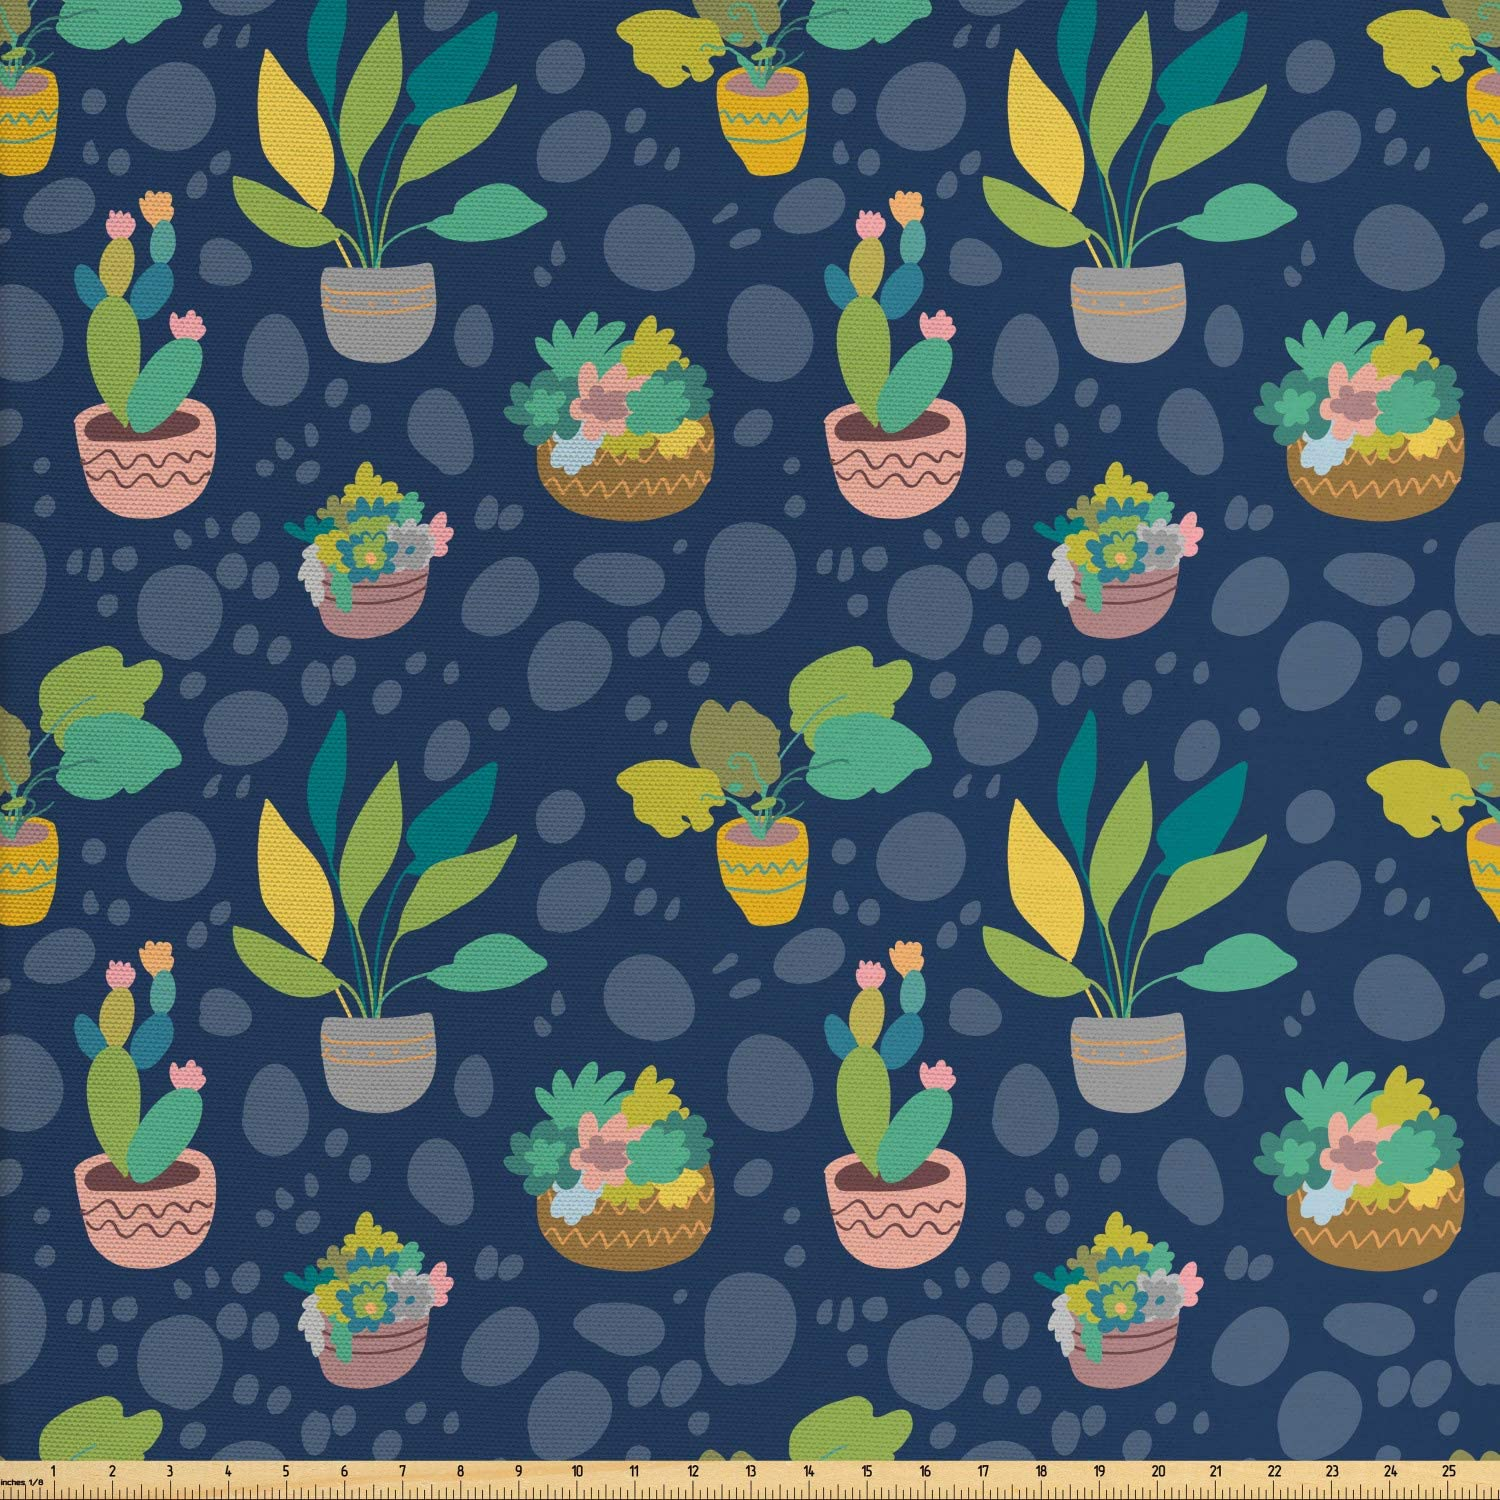 Ambesonne Cactus Print Fabric by The Yard, House Plantation Round Blemishes Succulents Tropical Concept, Decorative Fabric for Upholstery and Home Accents, 1 Yard, Sky Blue